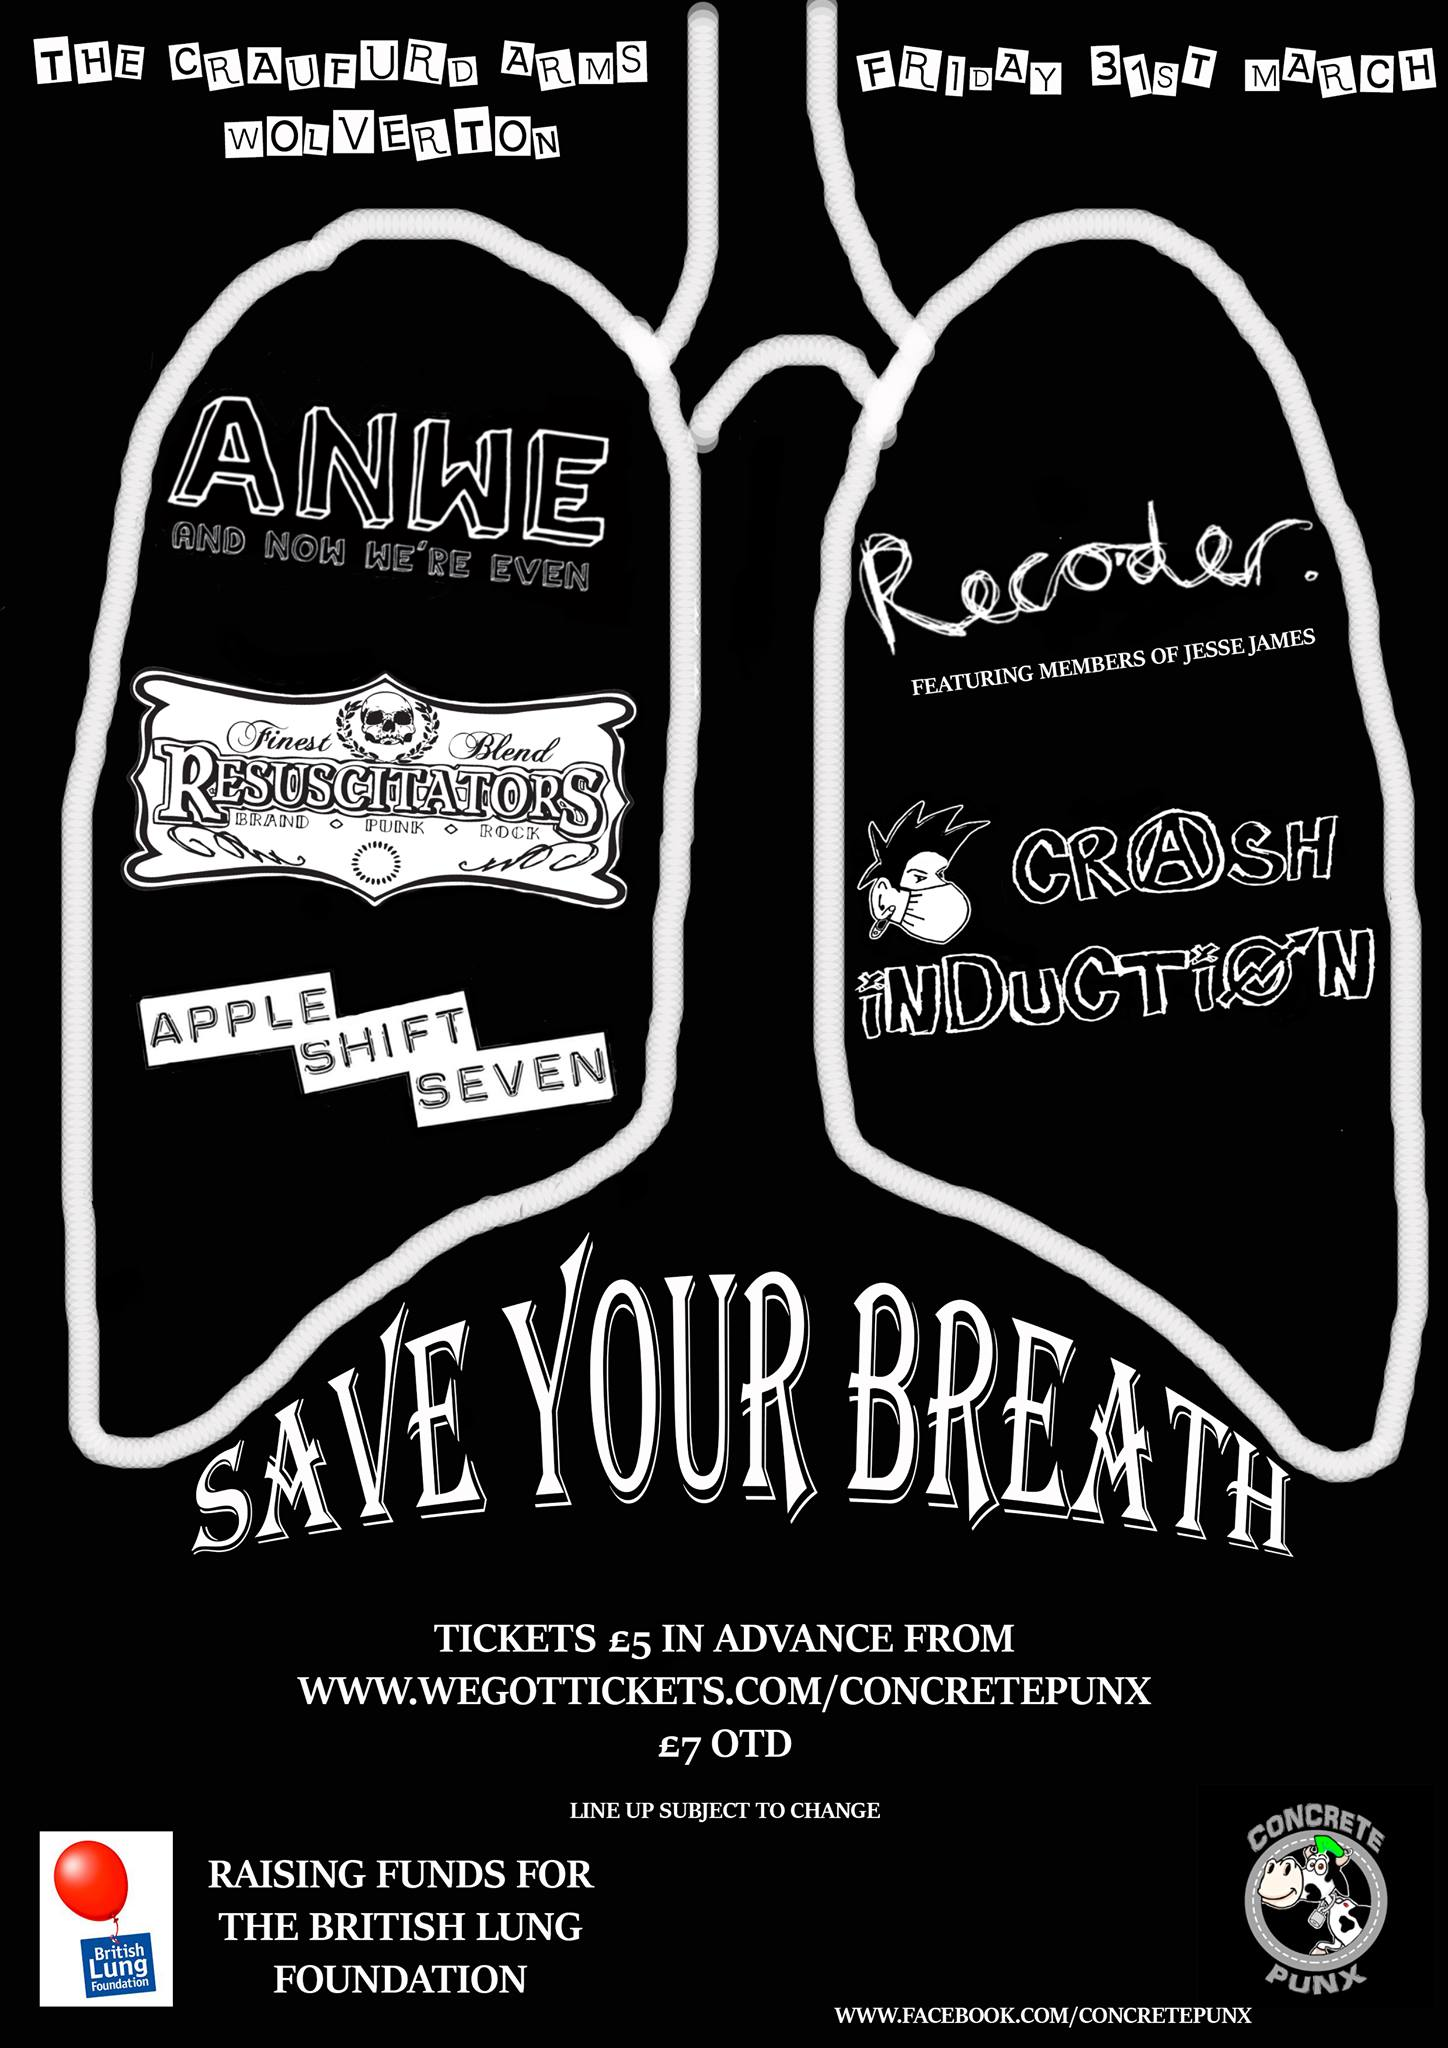 Save Your Breath - British Lung Foundation Benefit